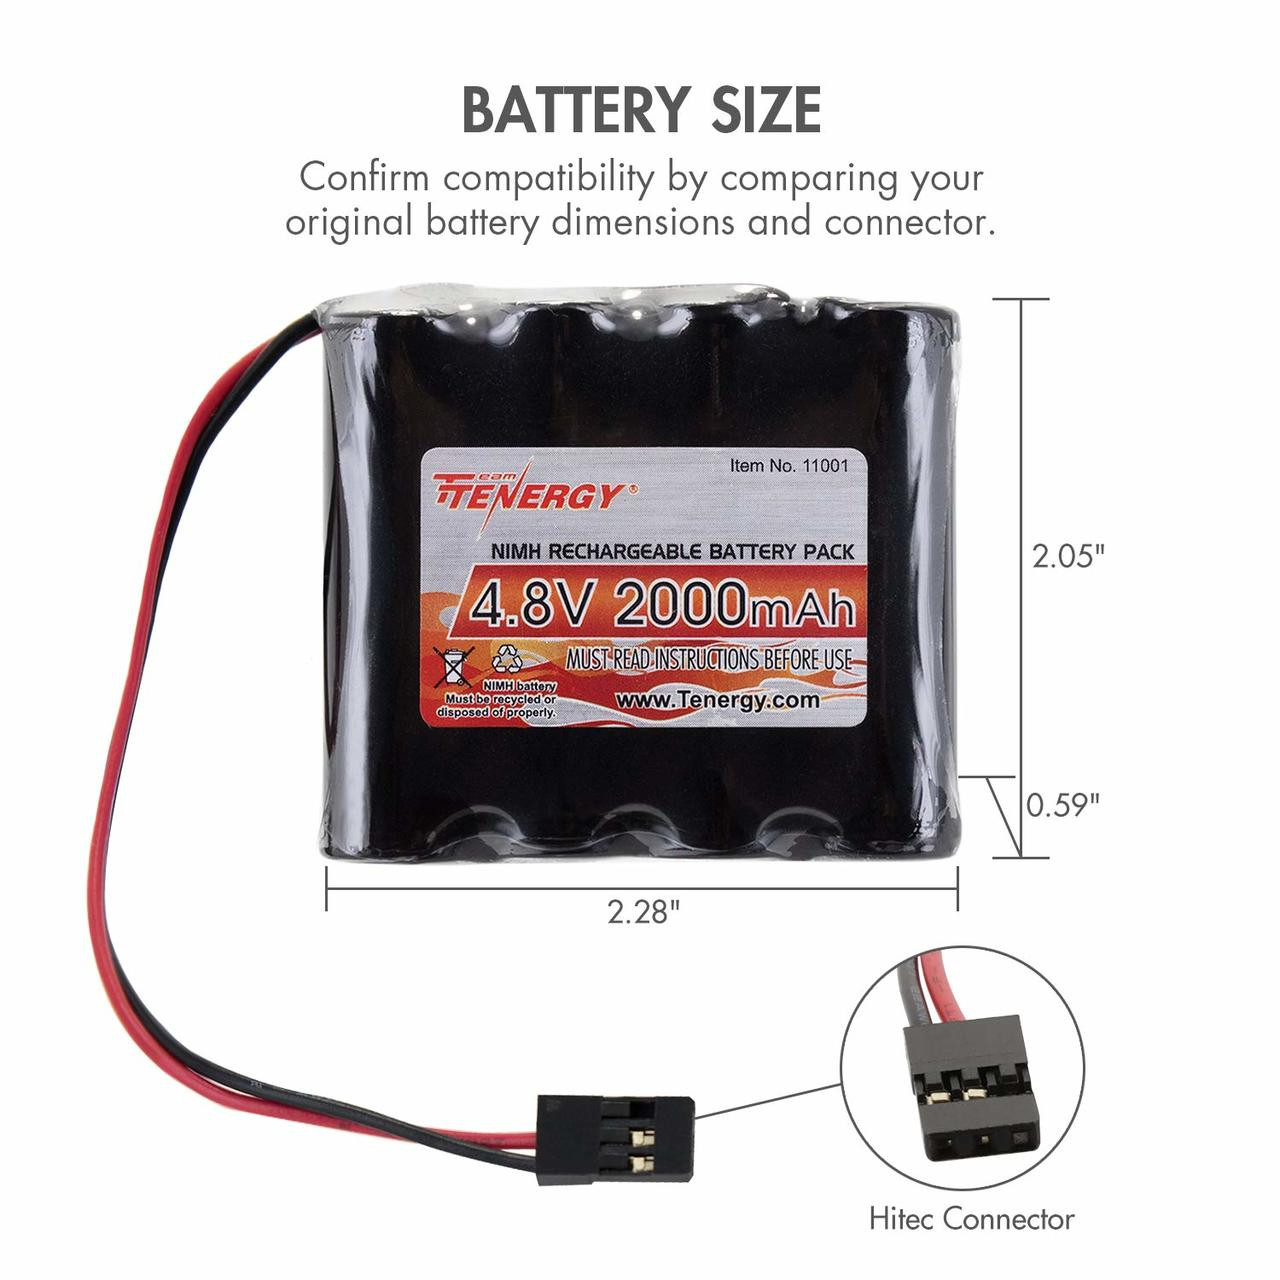 Tenergy NiMH 4.8V 2000mAh Flat Receiver RX Battery Pack for RC Airplanes